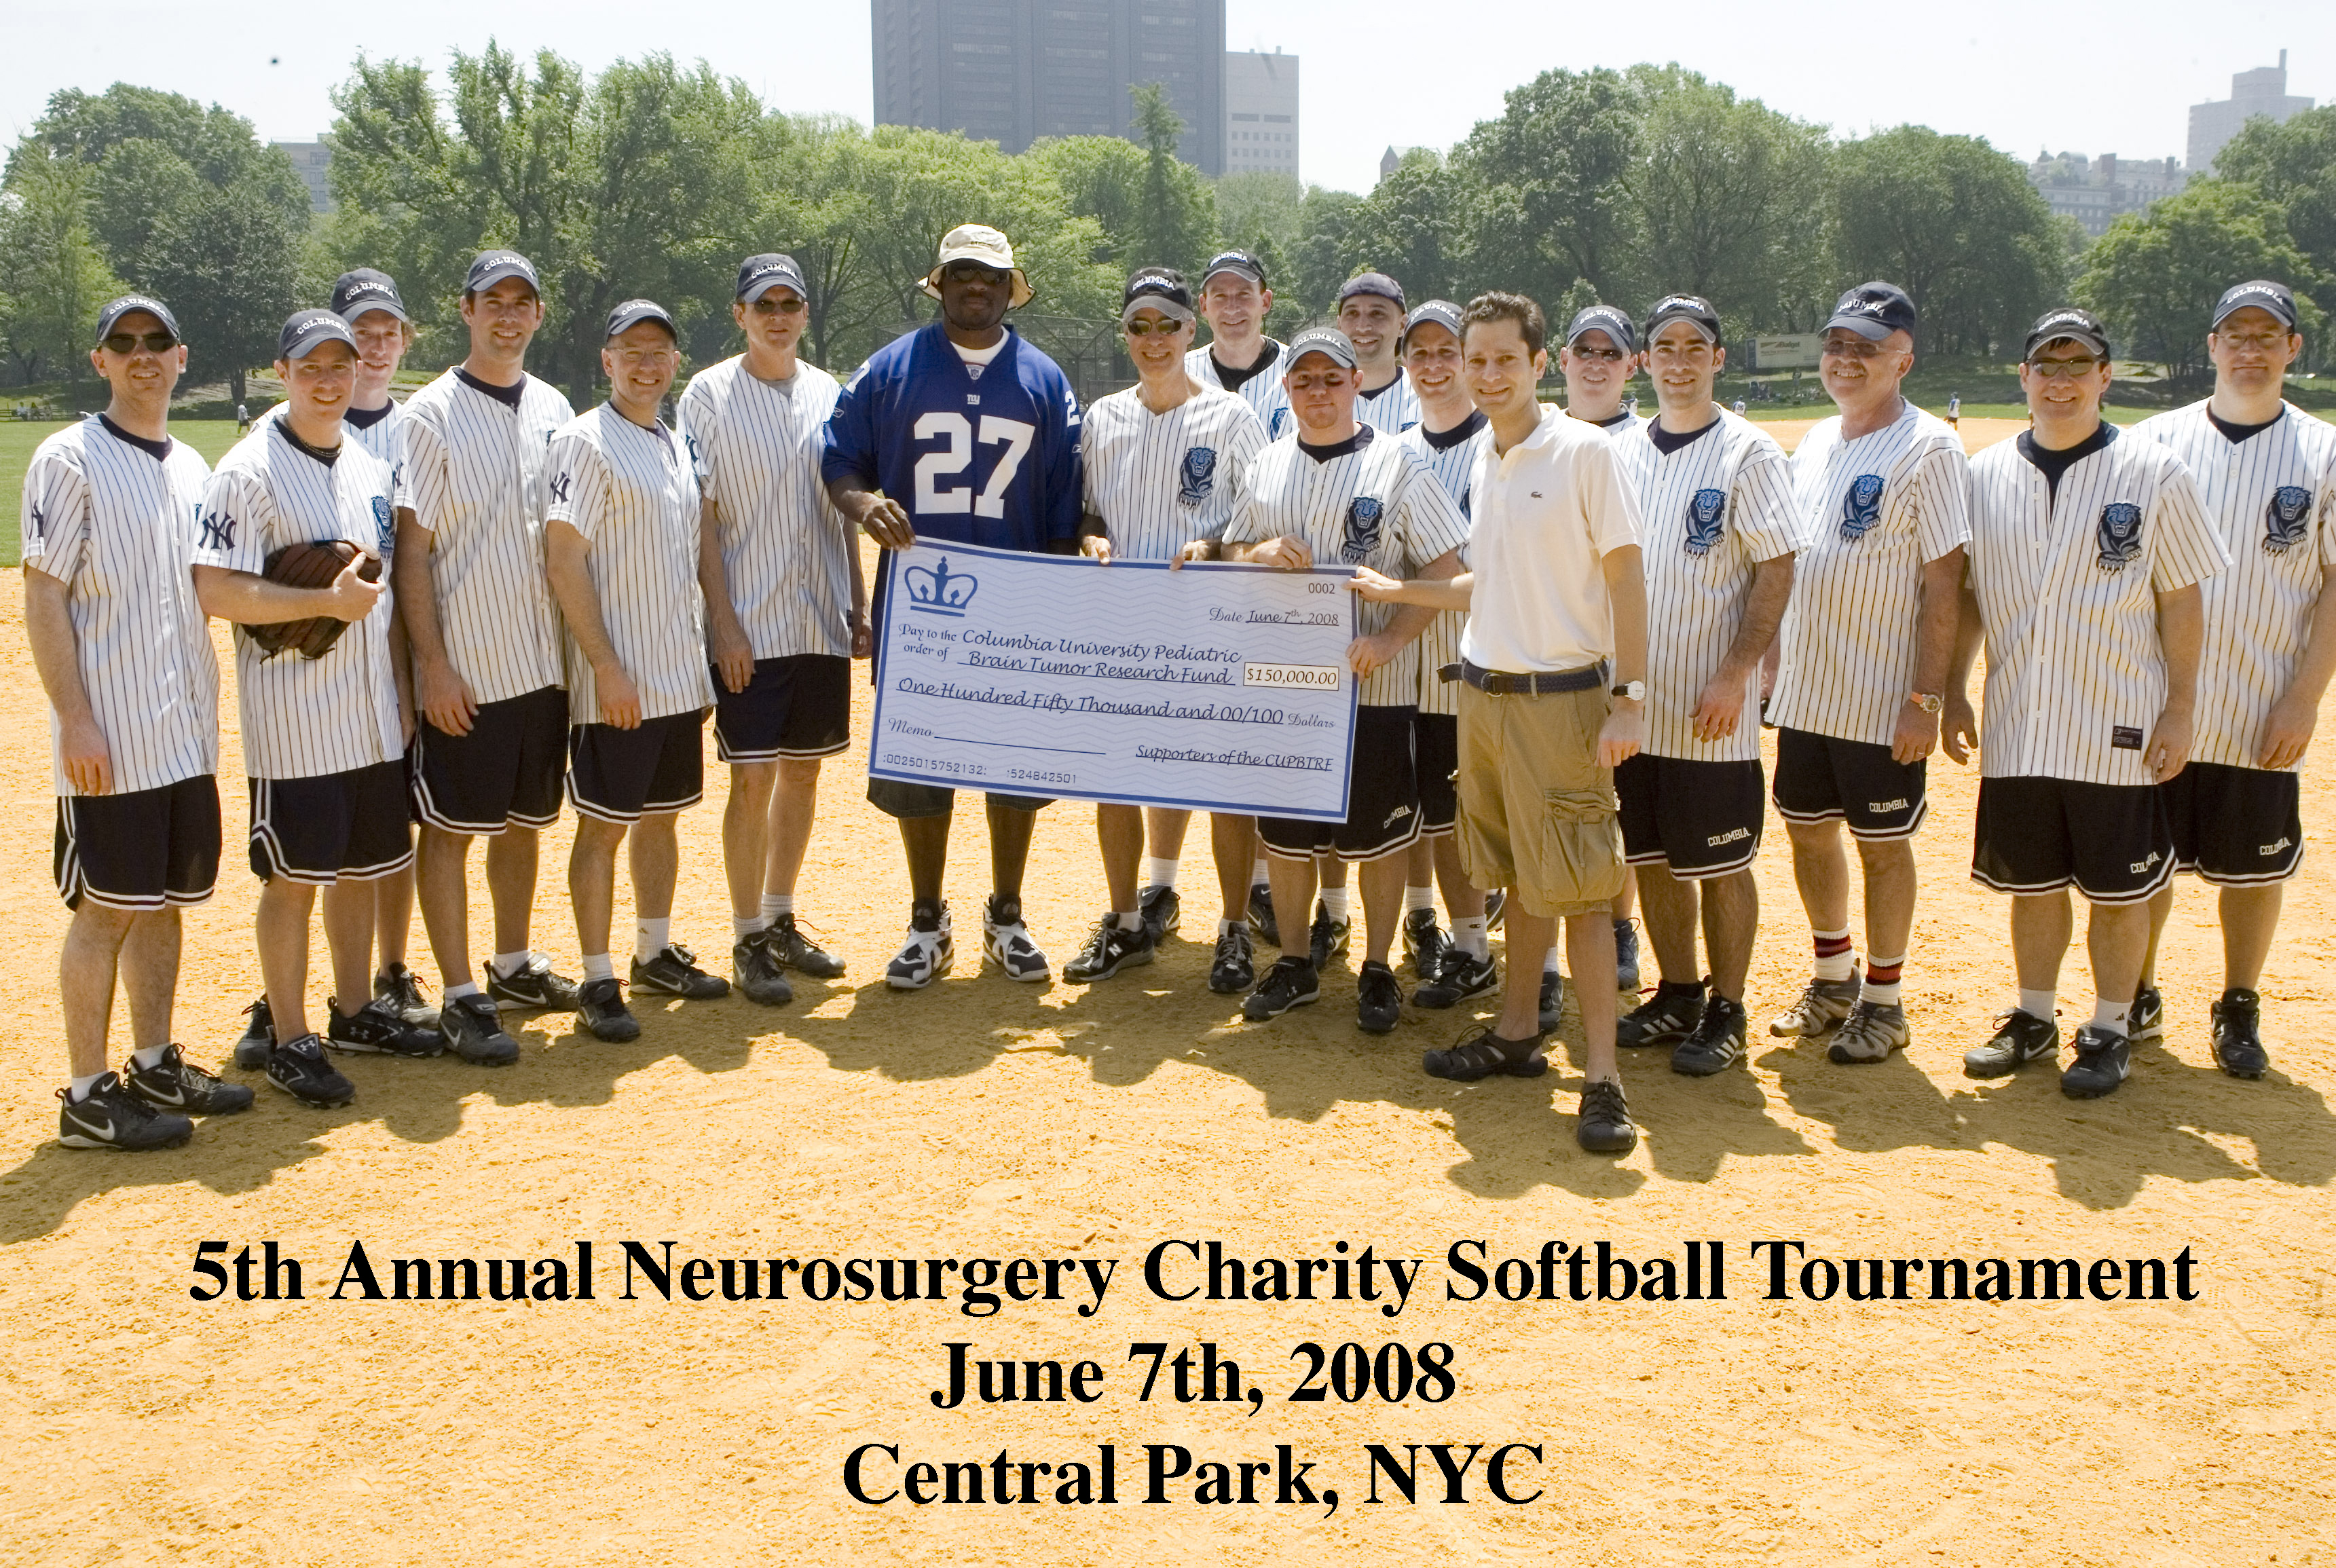 ANNUAL NEUROSURGERY CHARITY SOFTBALL TOURNAMENT